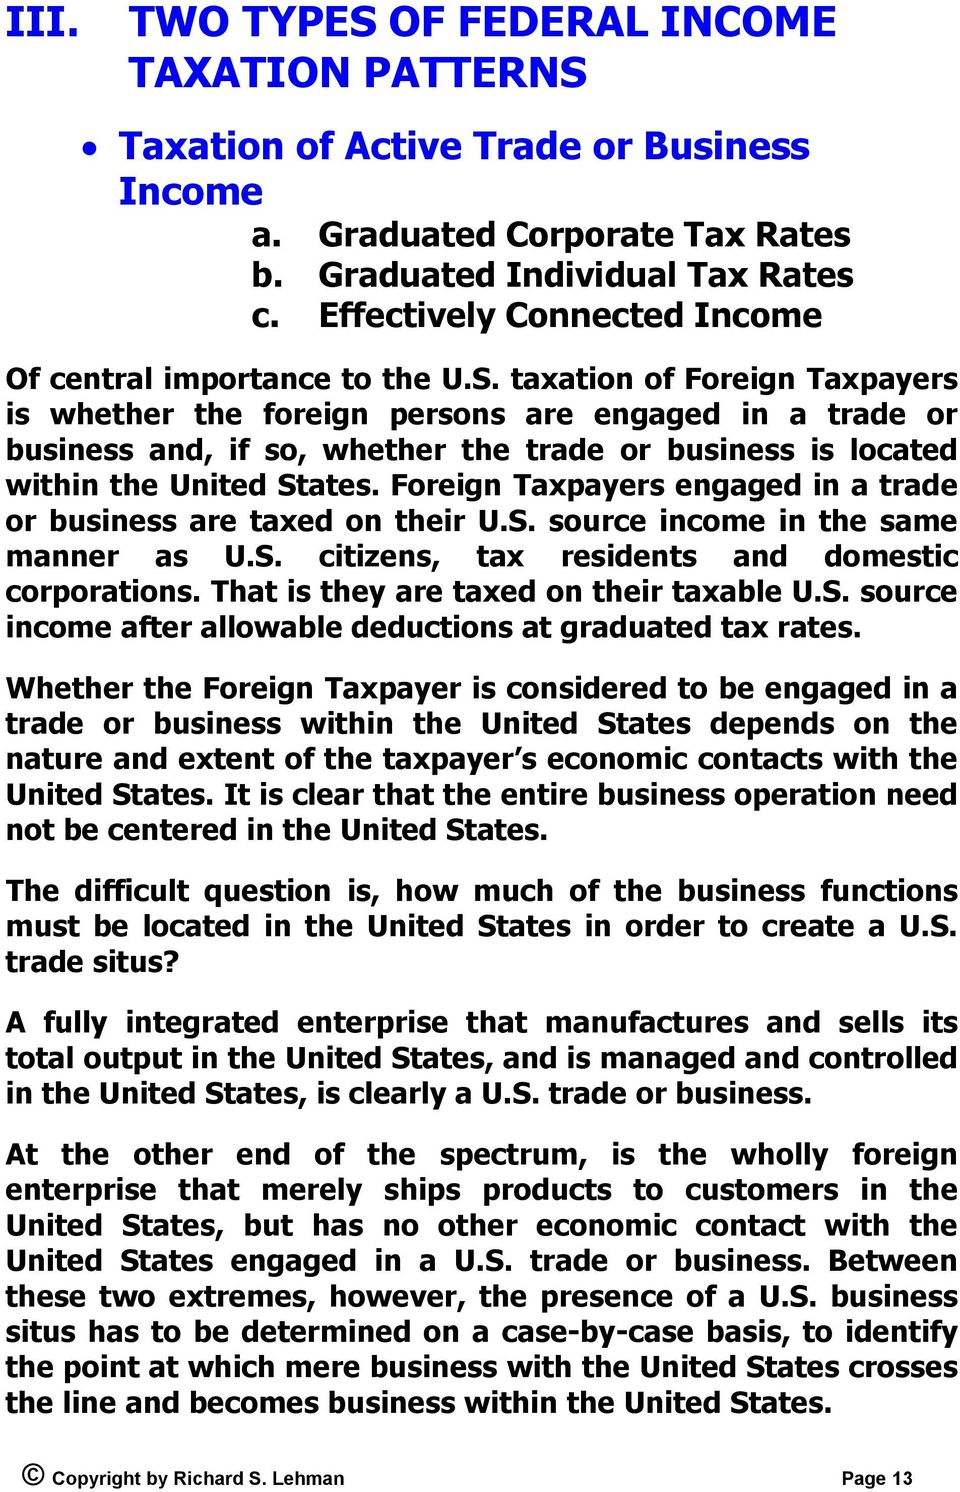 taxation of Foreign Taxpayers is whether the foreign persons are engaged in a trade or business and, if so, whether the trade or business is located within the United States.